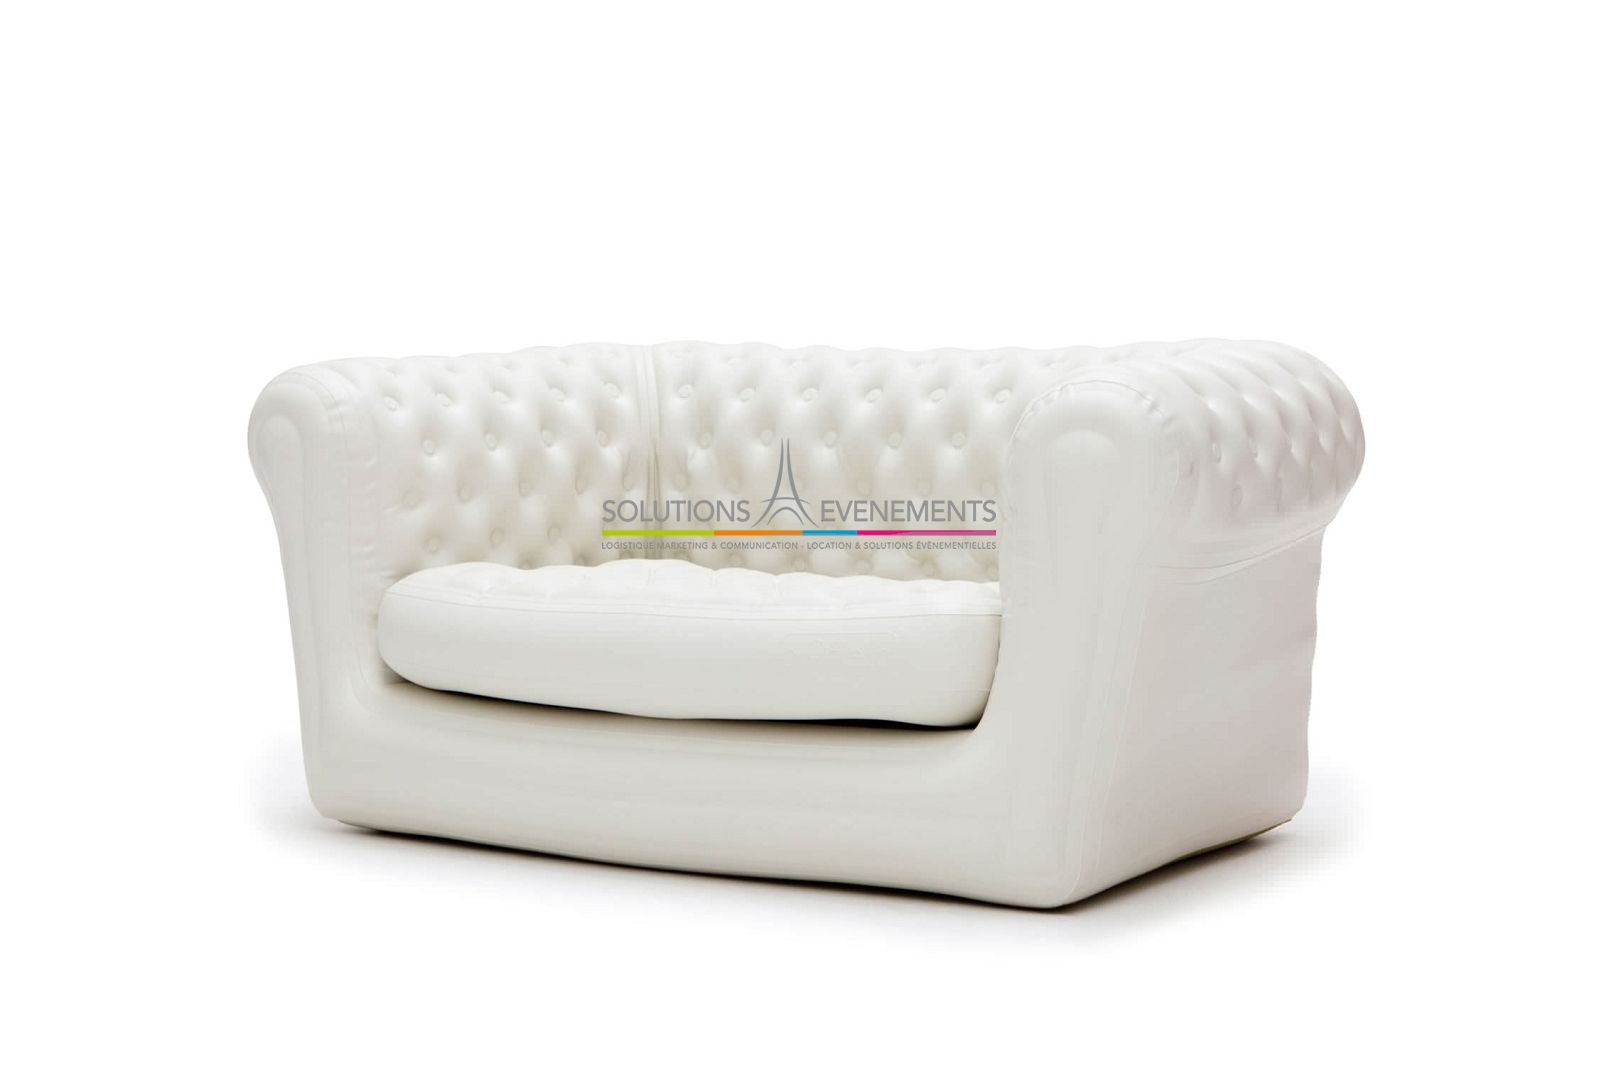 Location de canape chesterfield gonflable blanc - Canape chesterfield blanc ...